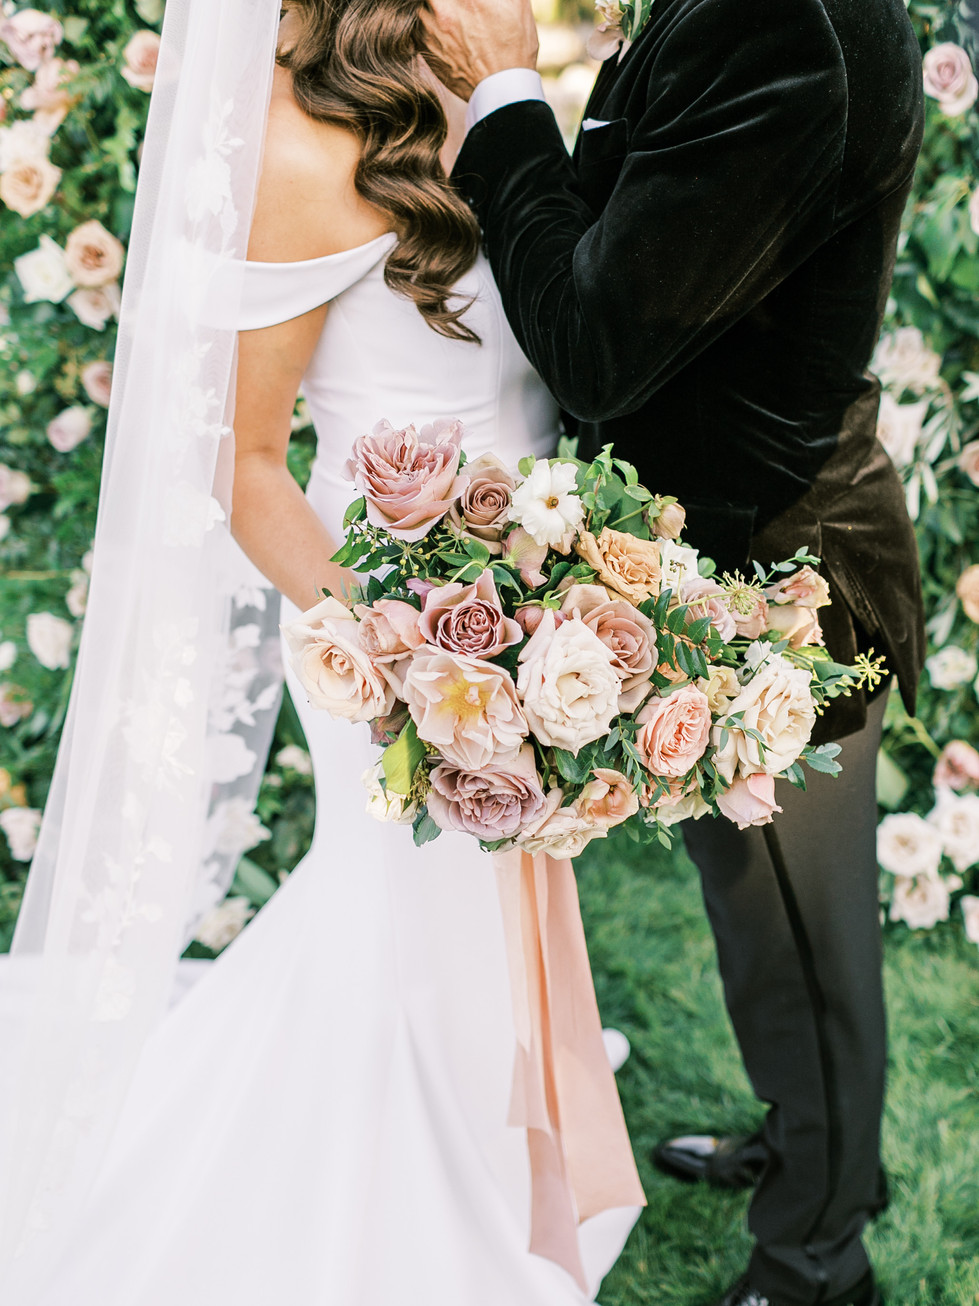 Dusty rose, blush, and toffee colored bridal bouquet, with treailing silk ribbons. Photo: Lianna Marie